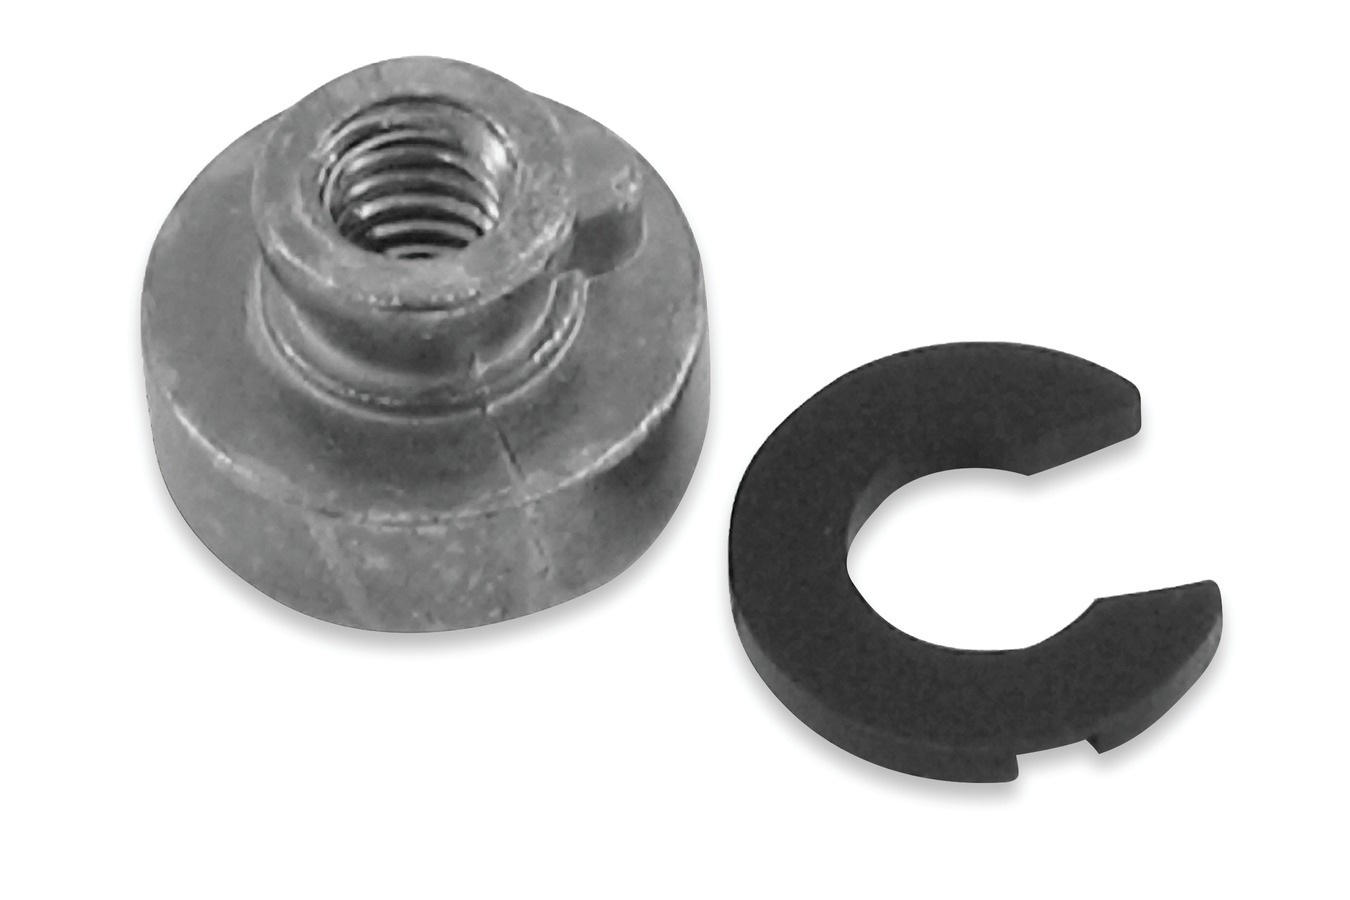 Fender Nut Kit for Harley-Davidson